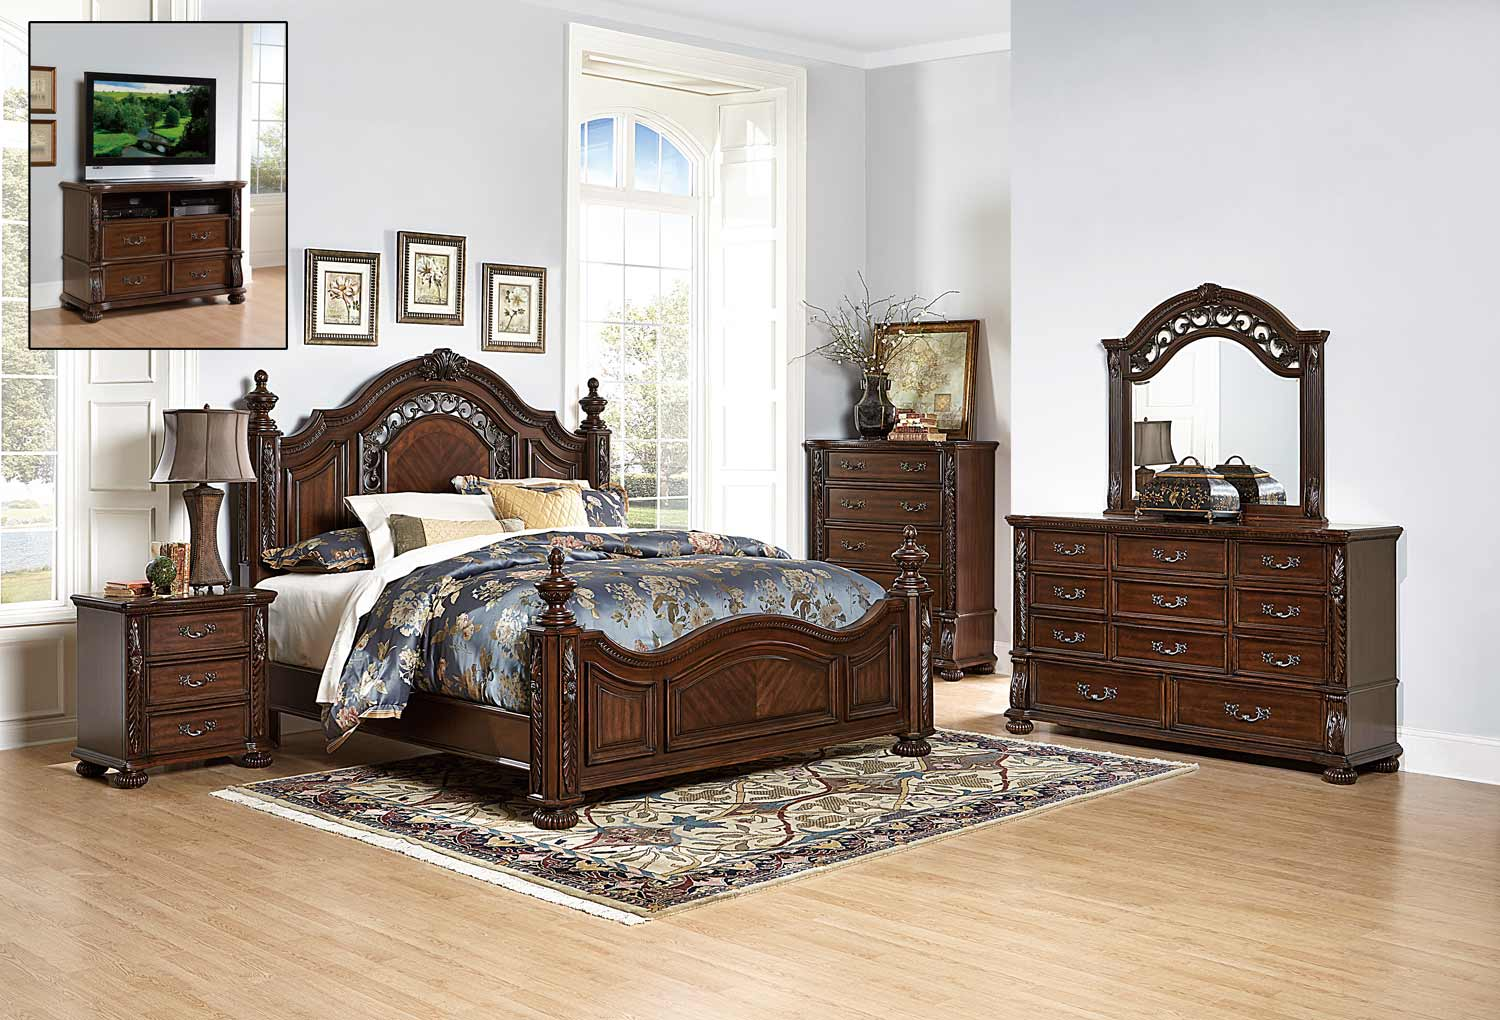 Homelegance Augustine Court Bedroom Set - Rich Brown Cherry